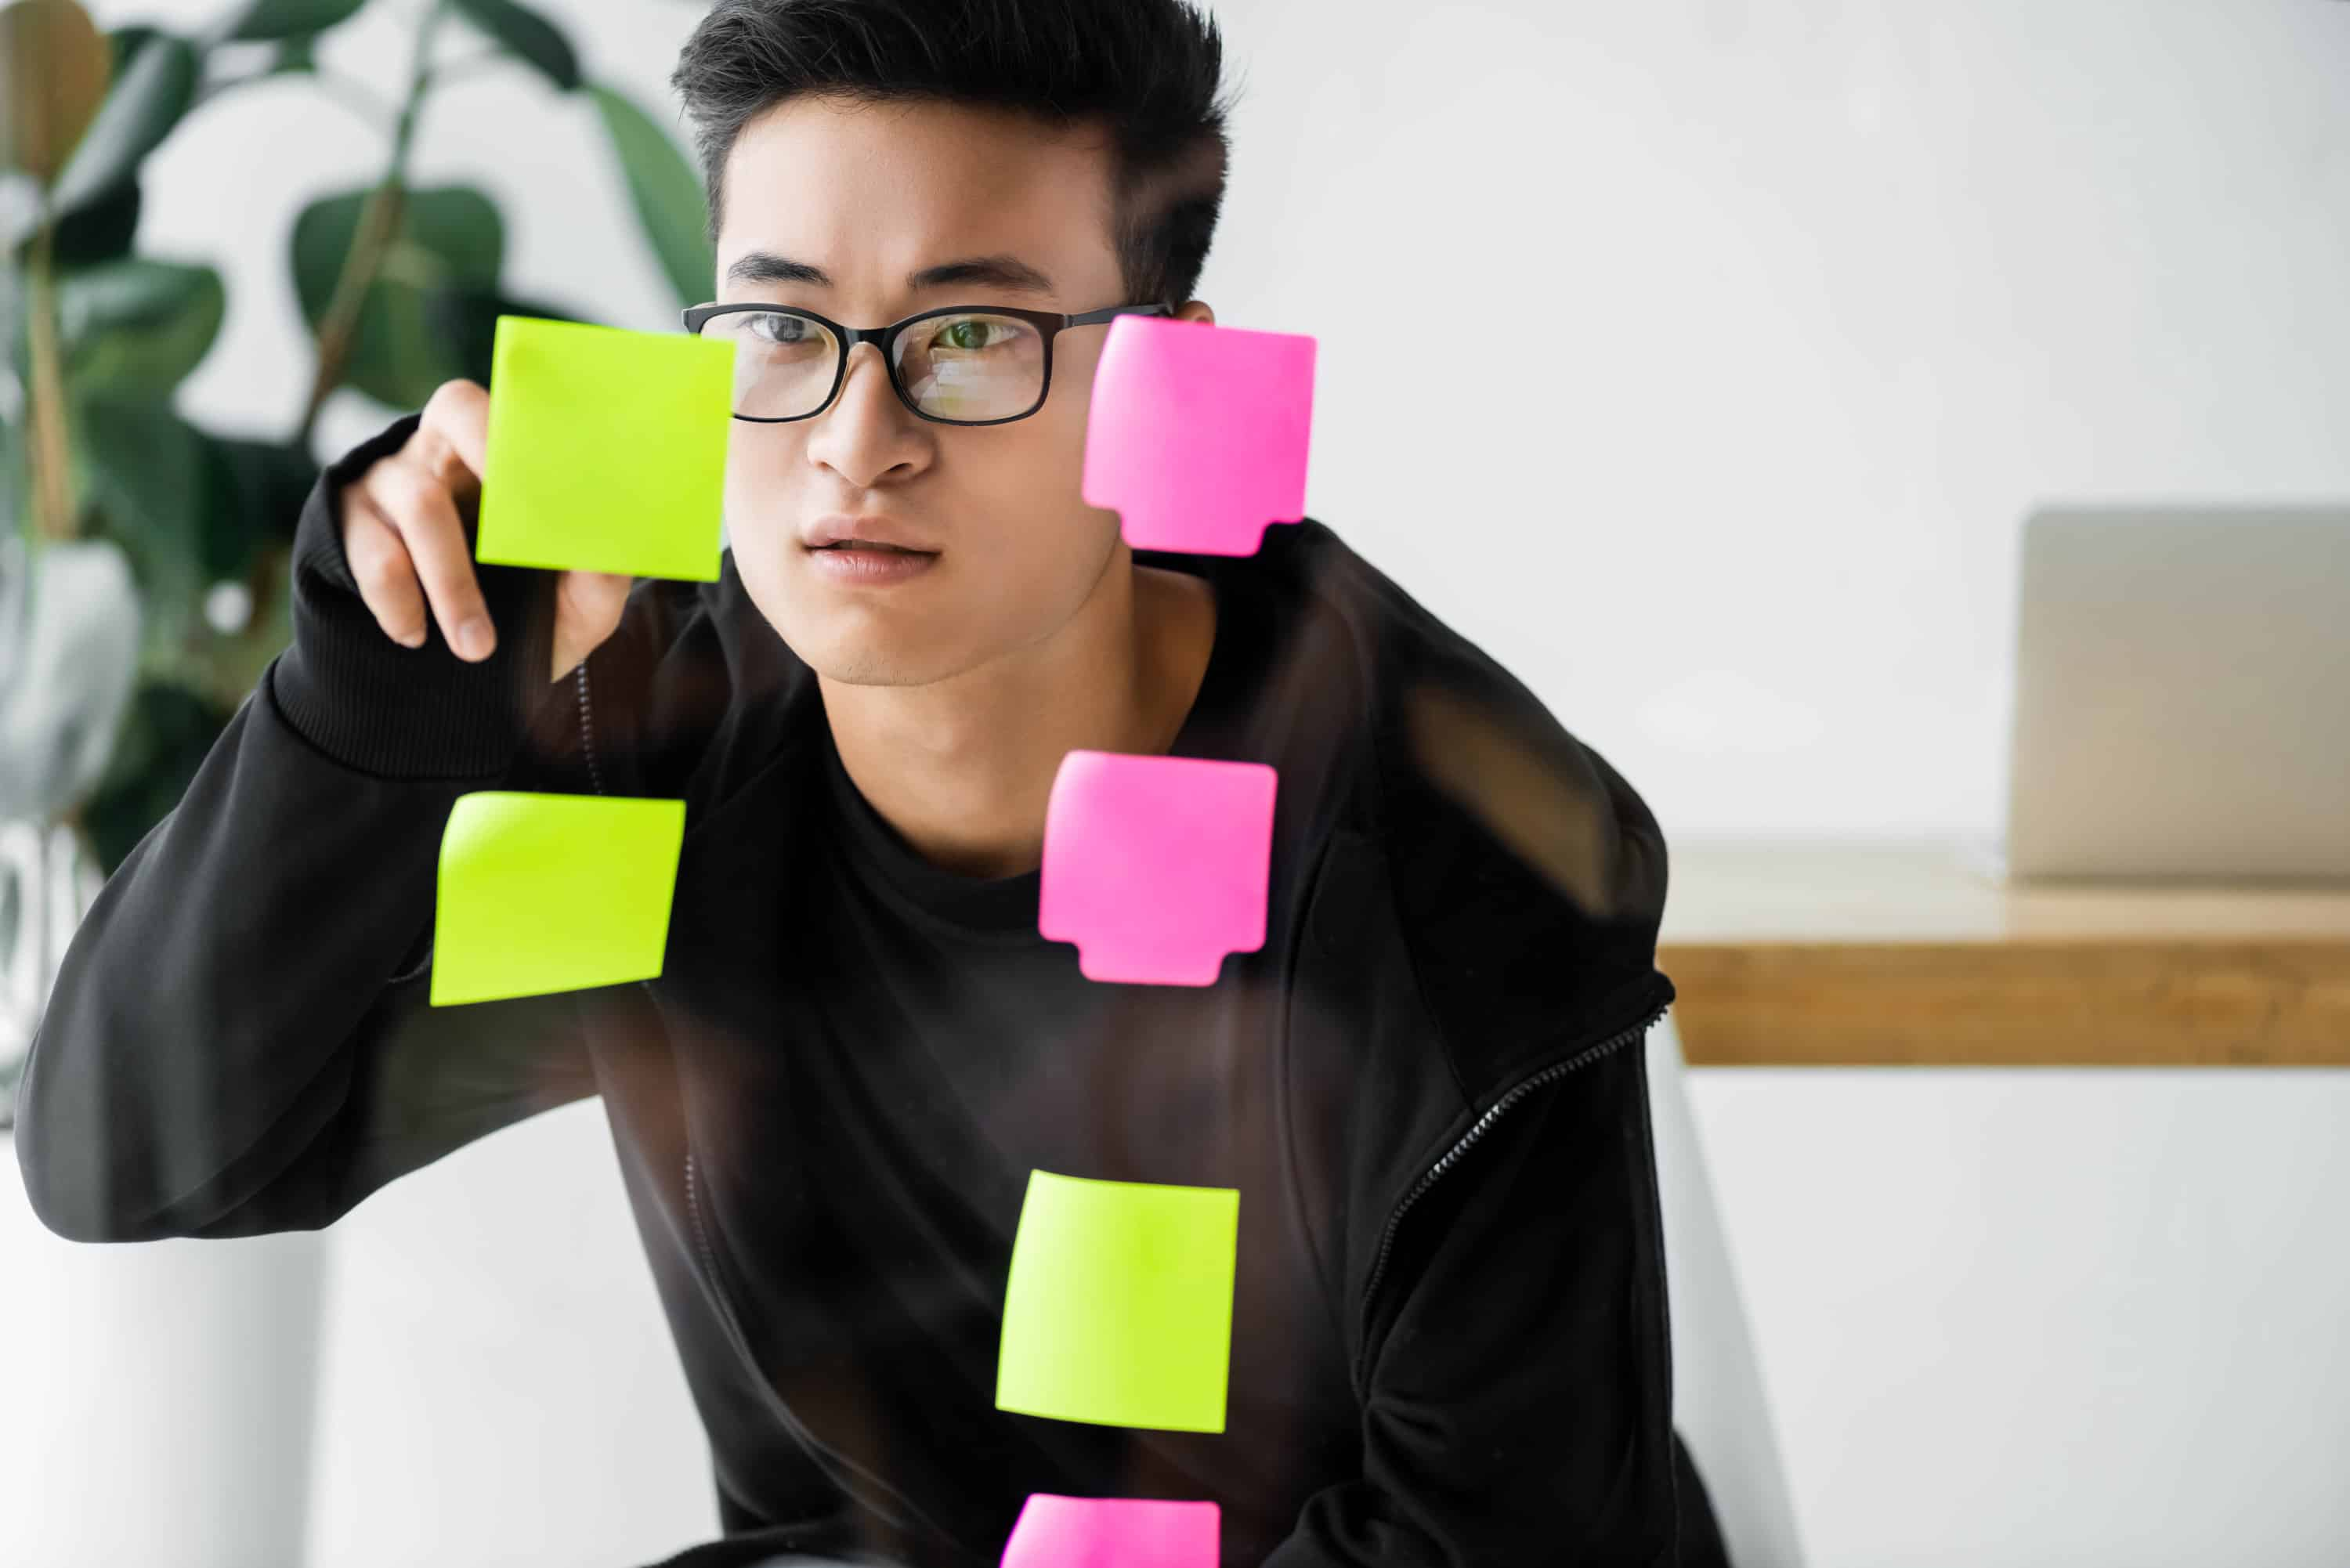 Young Asian man organizing Post-It notes containing a plan to implement financial advice on a glassboard